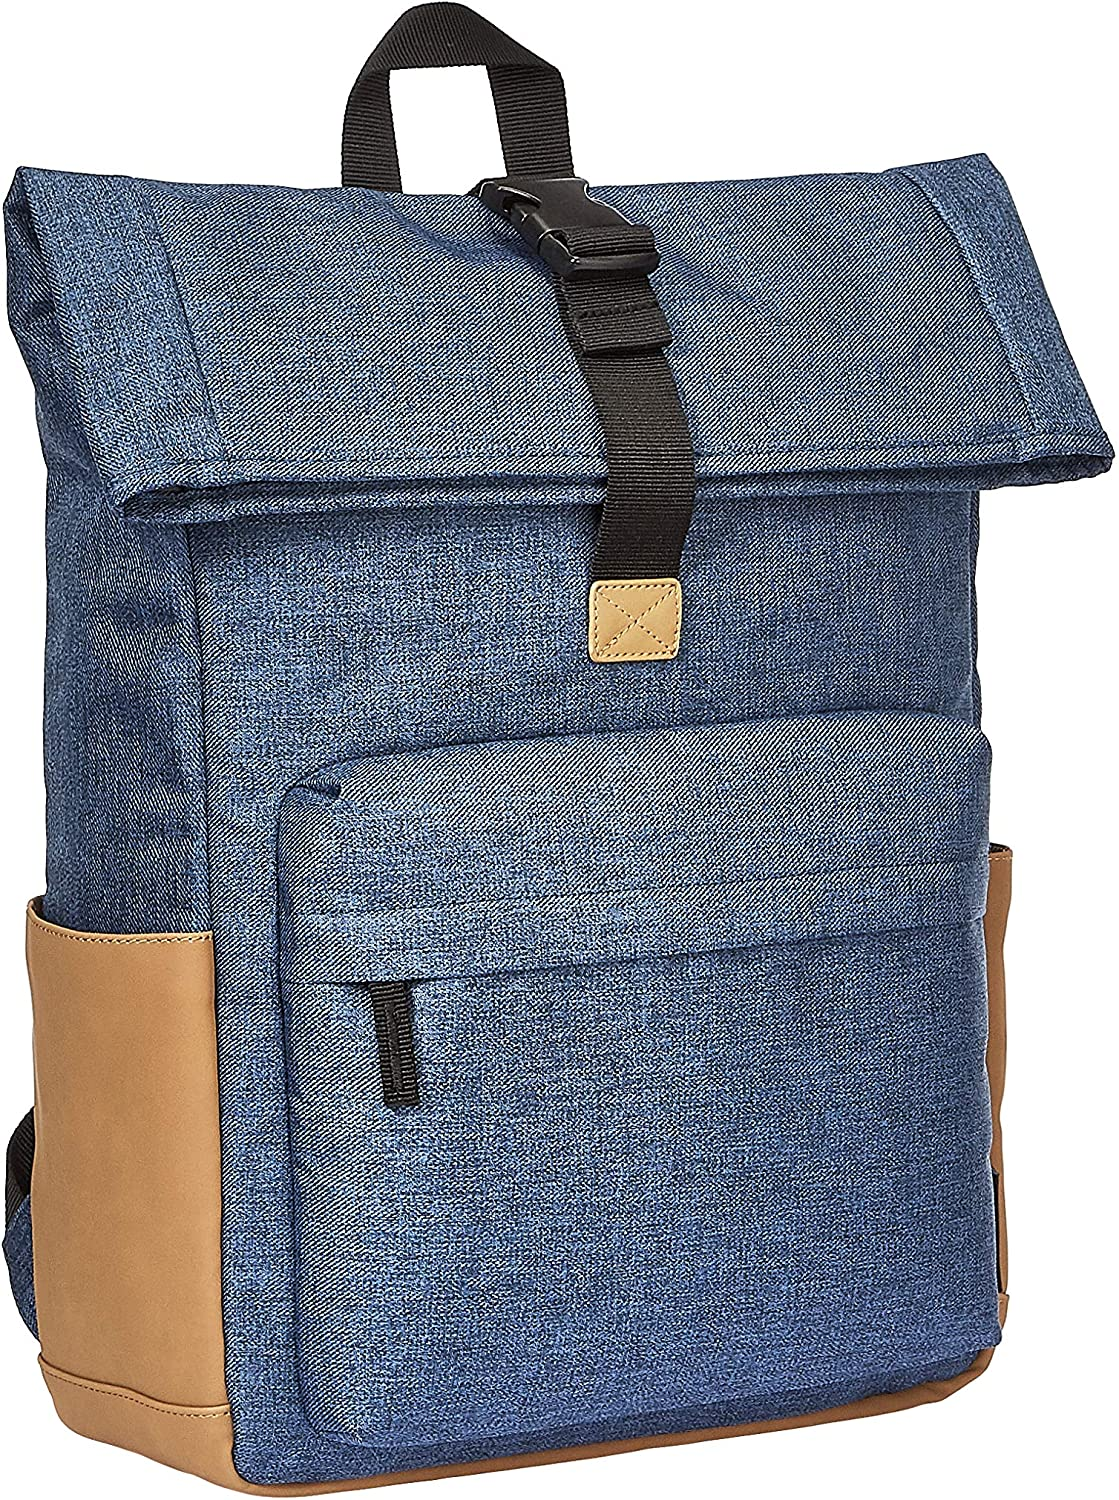 AmazonBasics Anti-Theft Roll Top Backpack